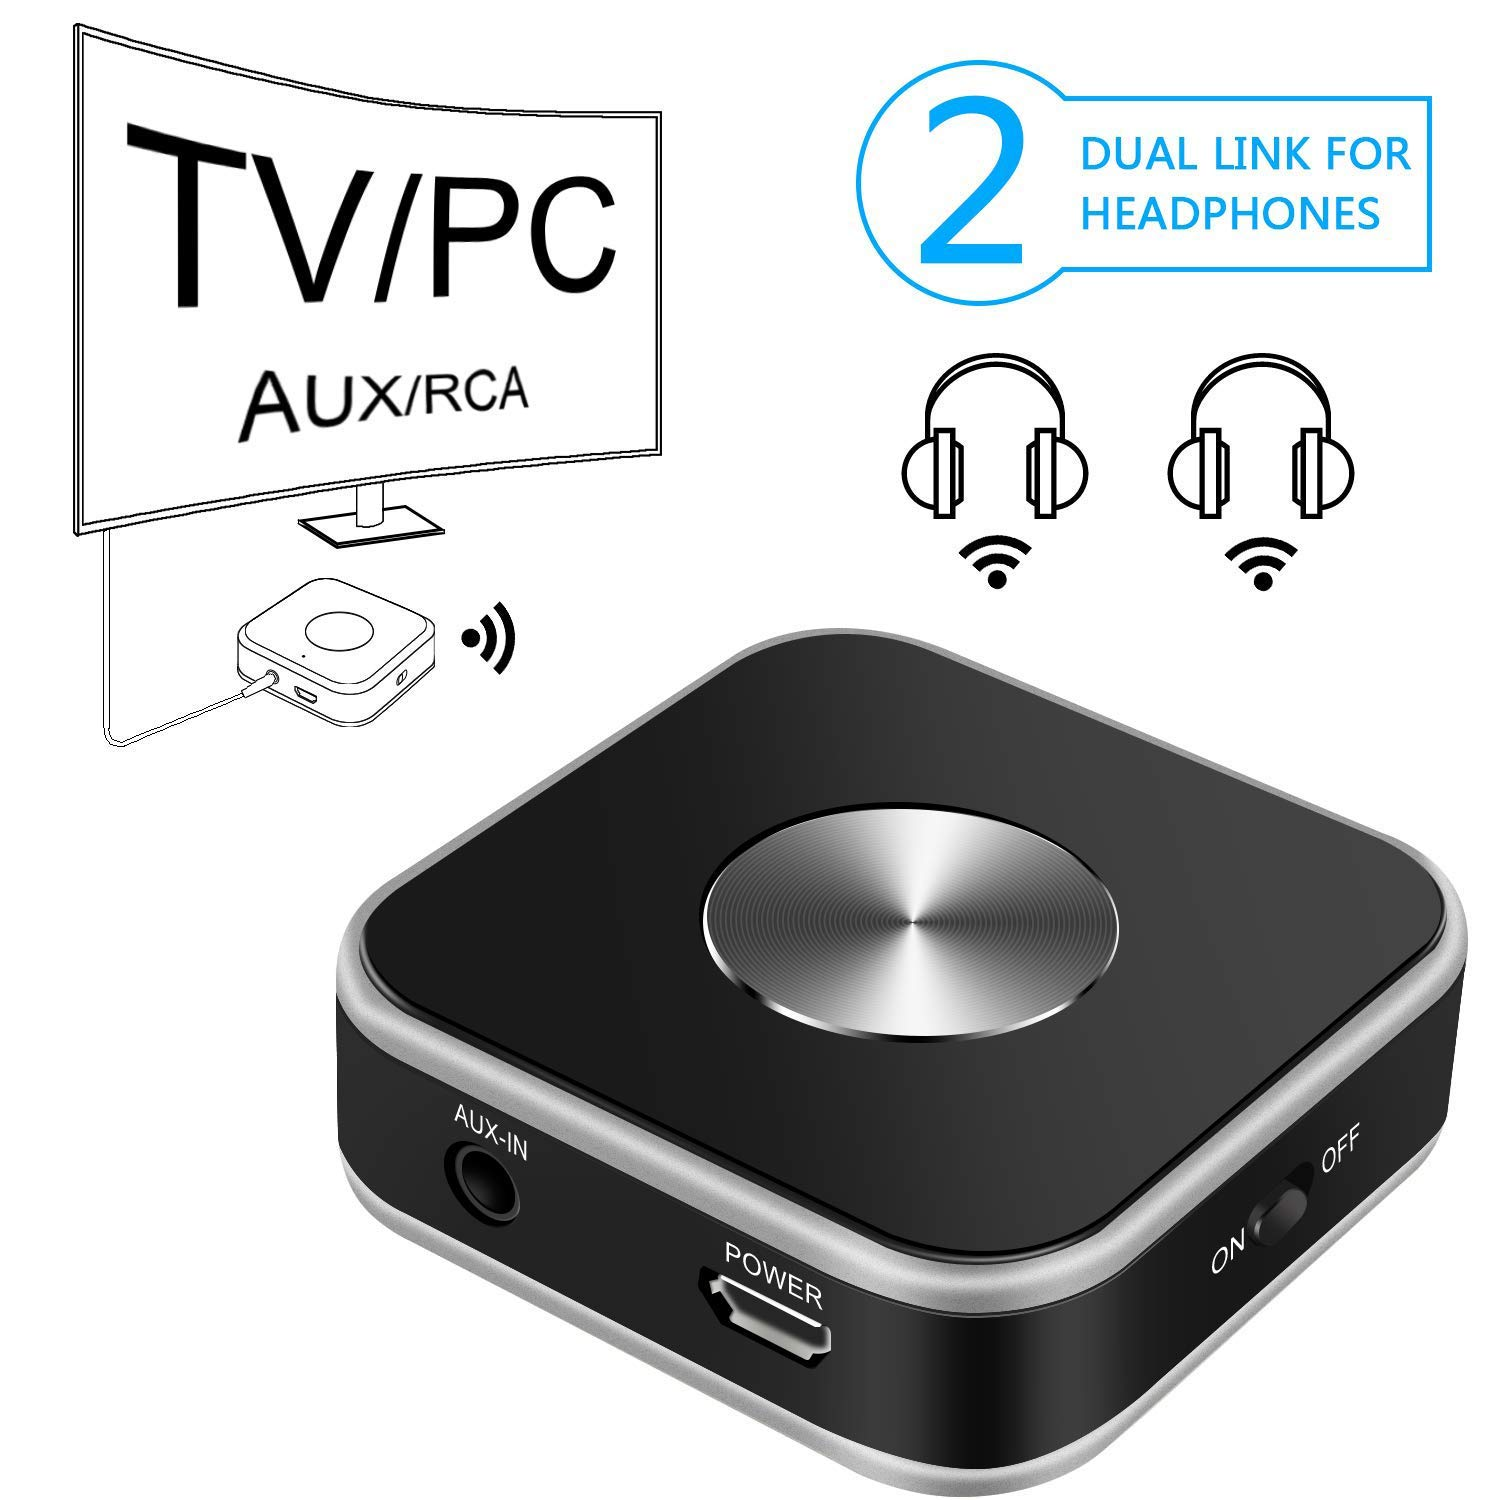 Bluetooth Audio Transmitter With 3 5mm Aux Rca Usb Input For Tv Computer Laptop Wireless Audio Adapter Support Dual Link For Two Headphones Walmart Com Walmart Com